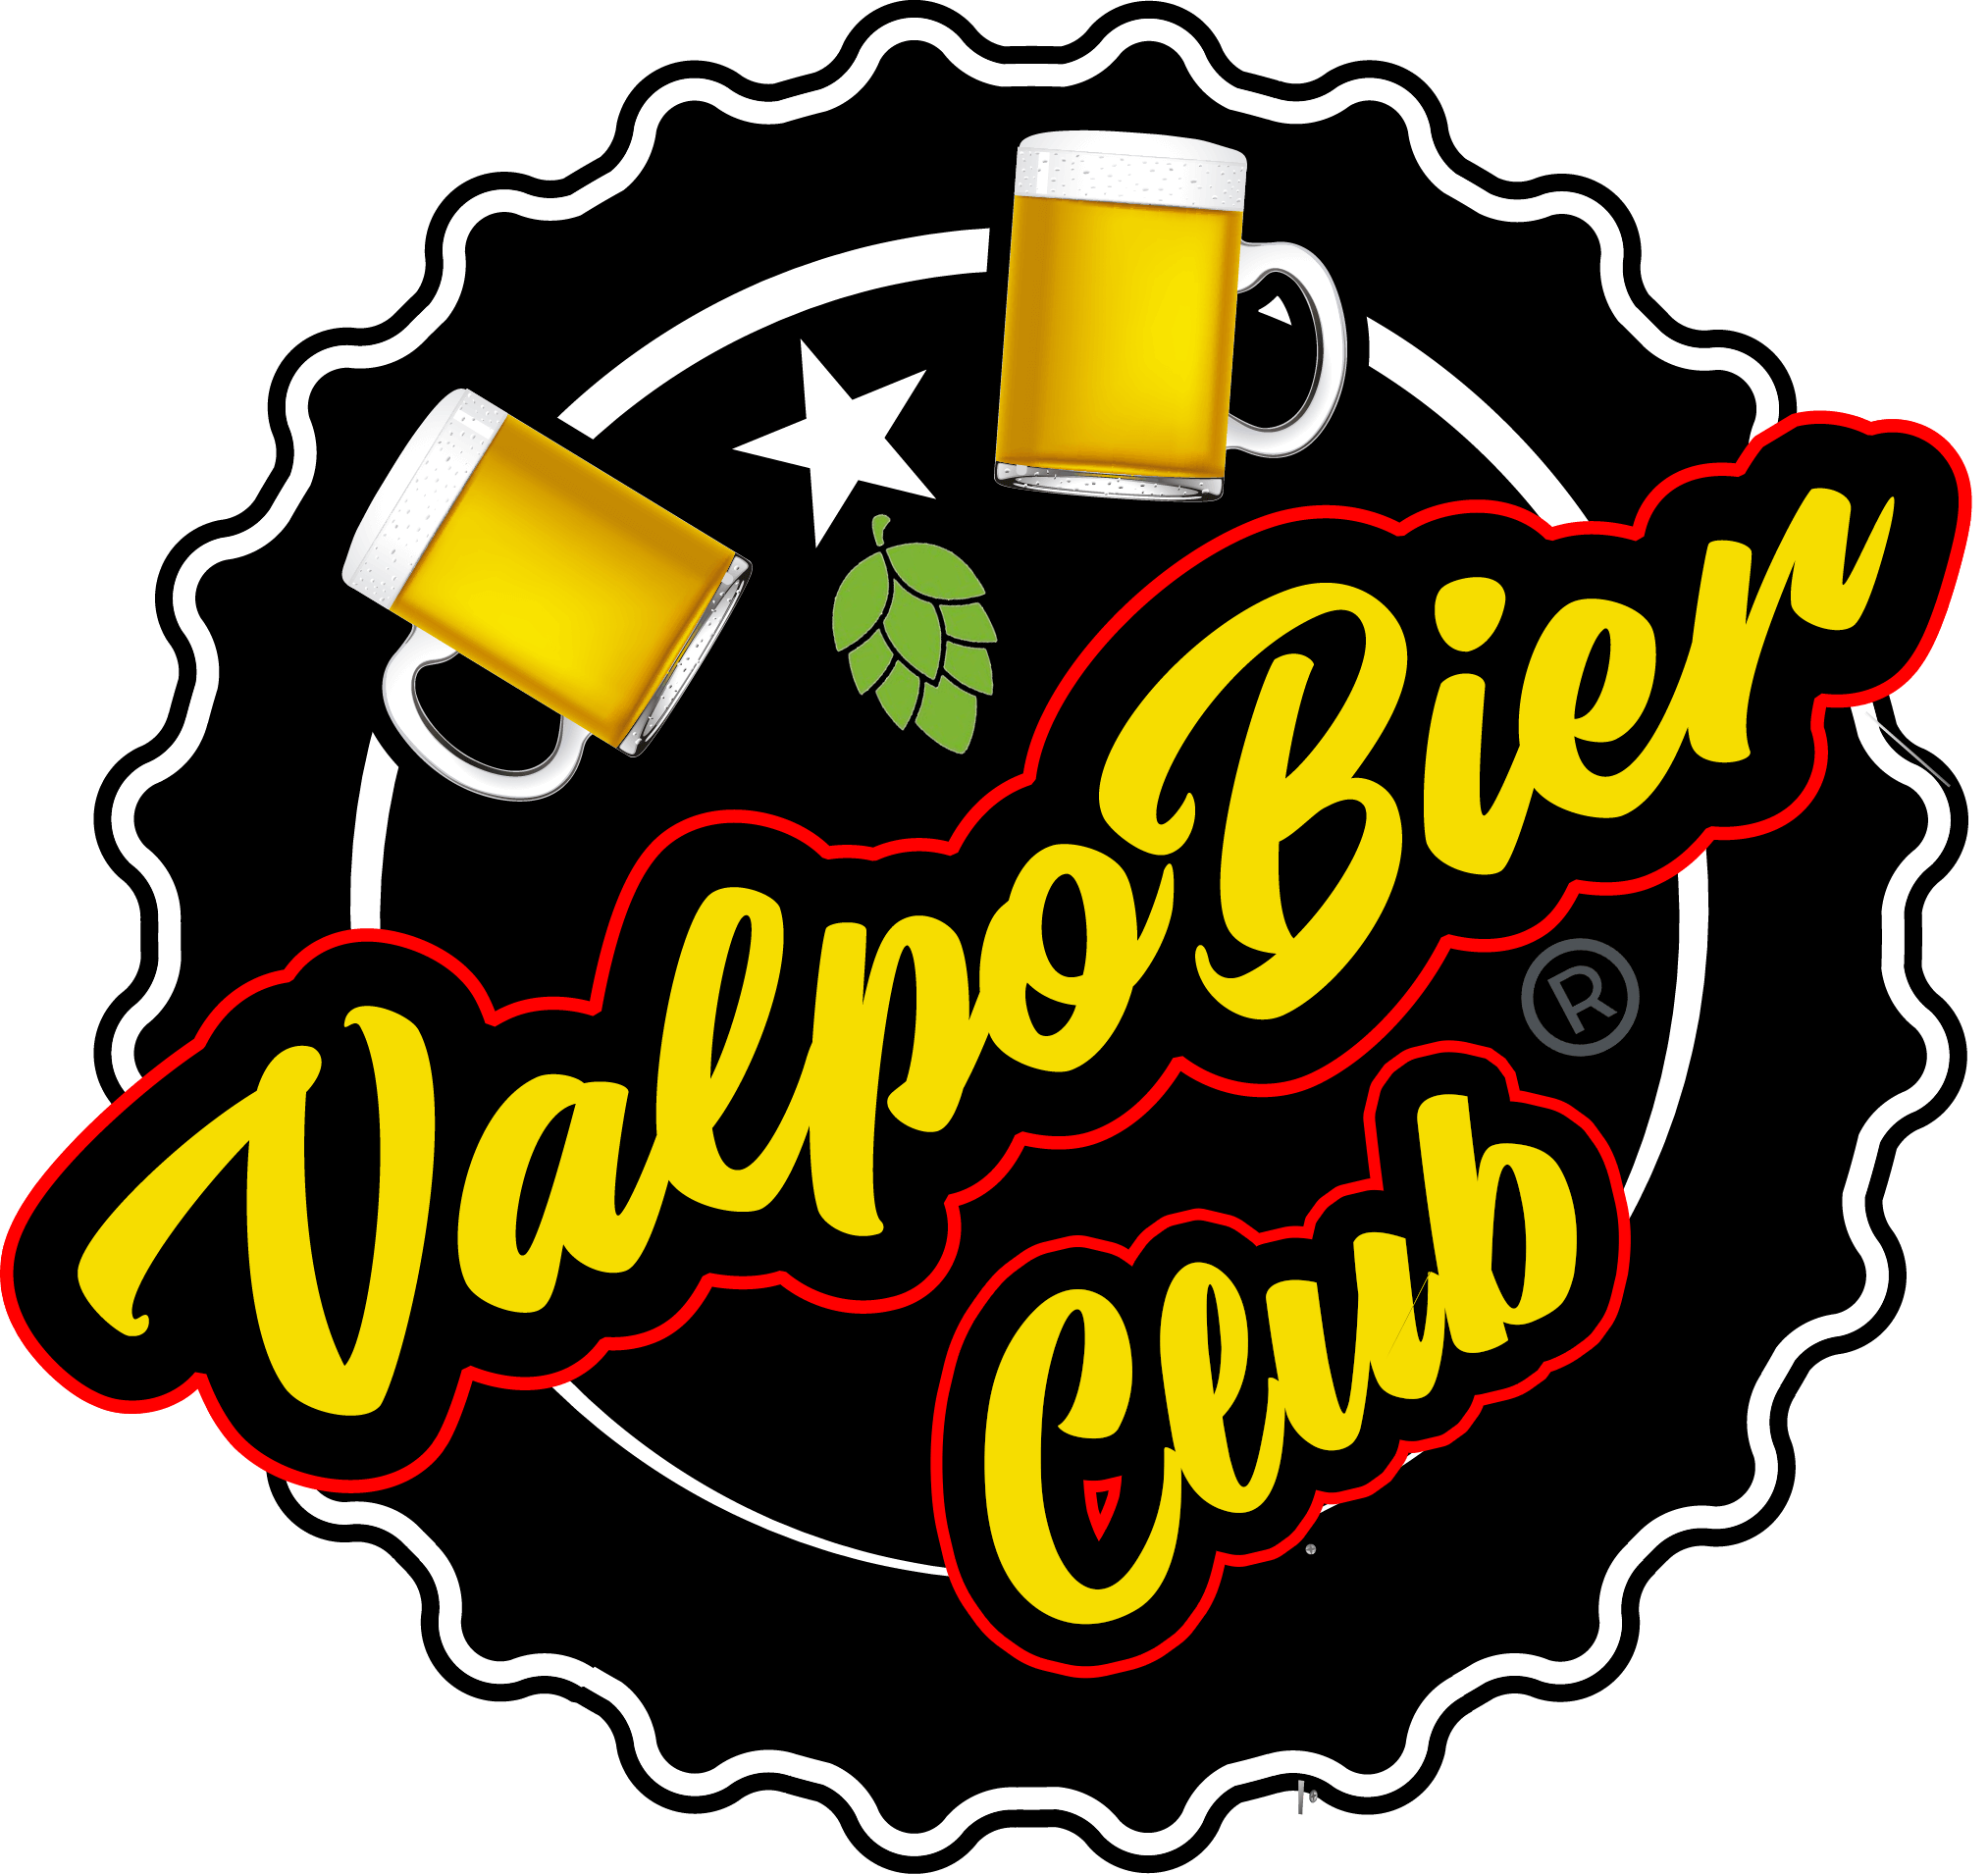 Club Valpobier